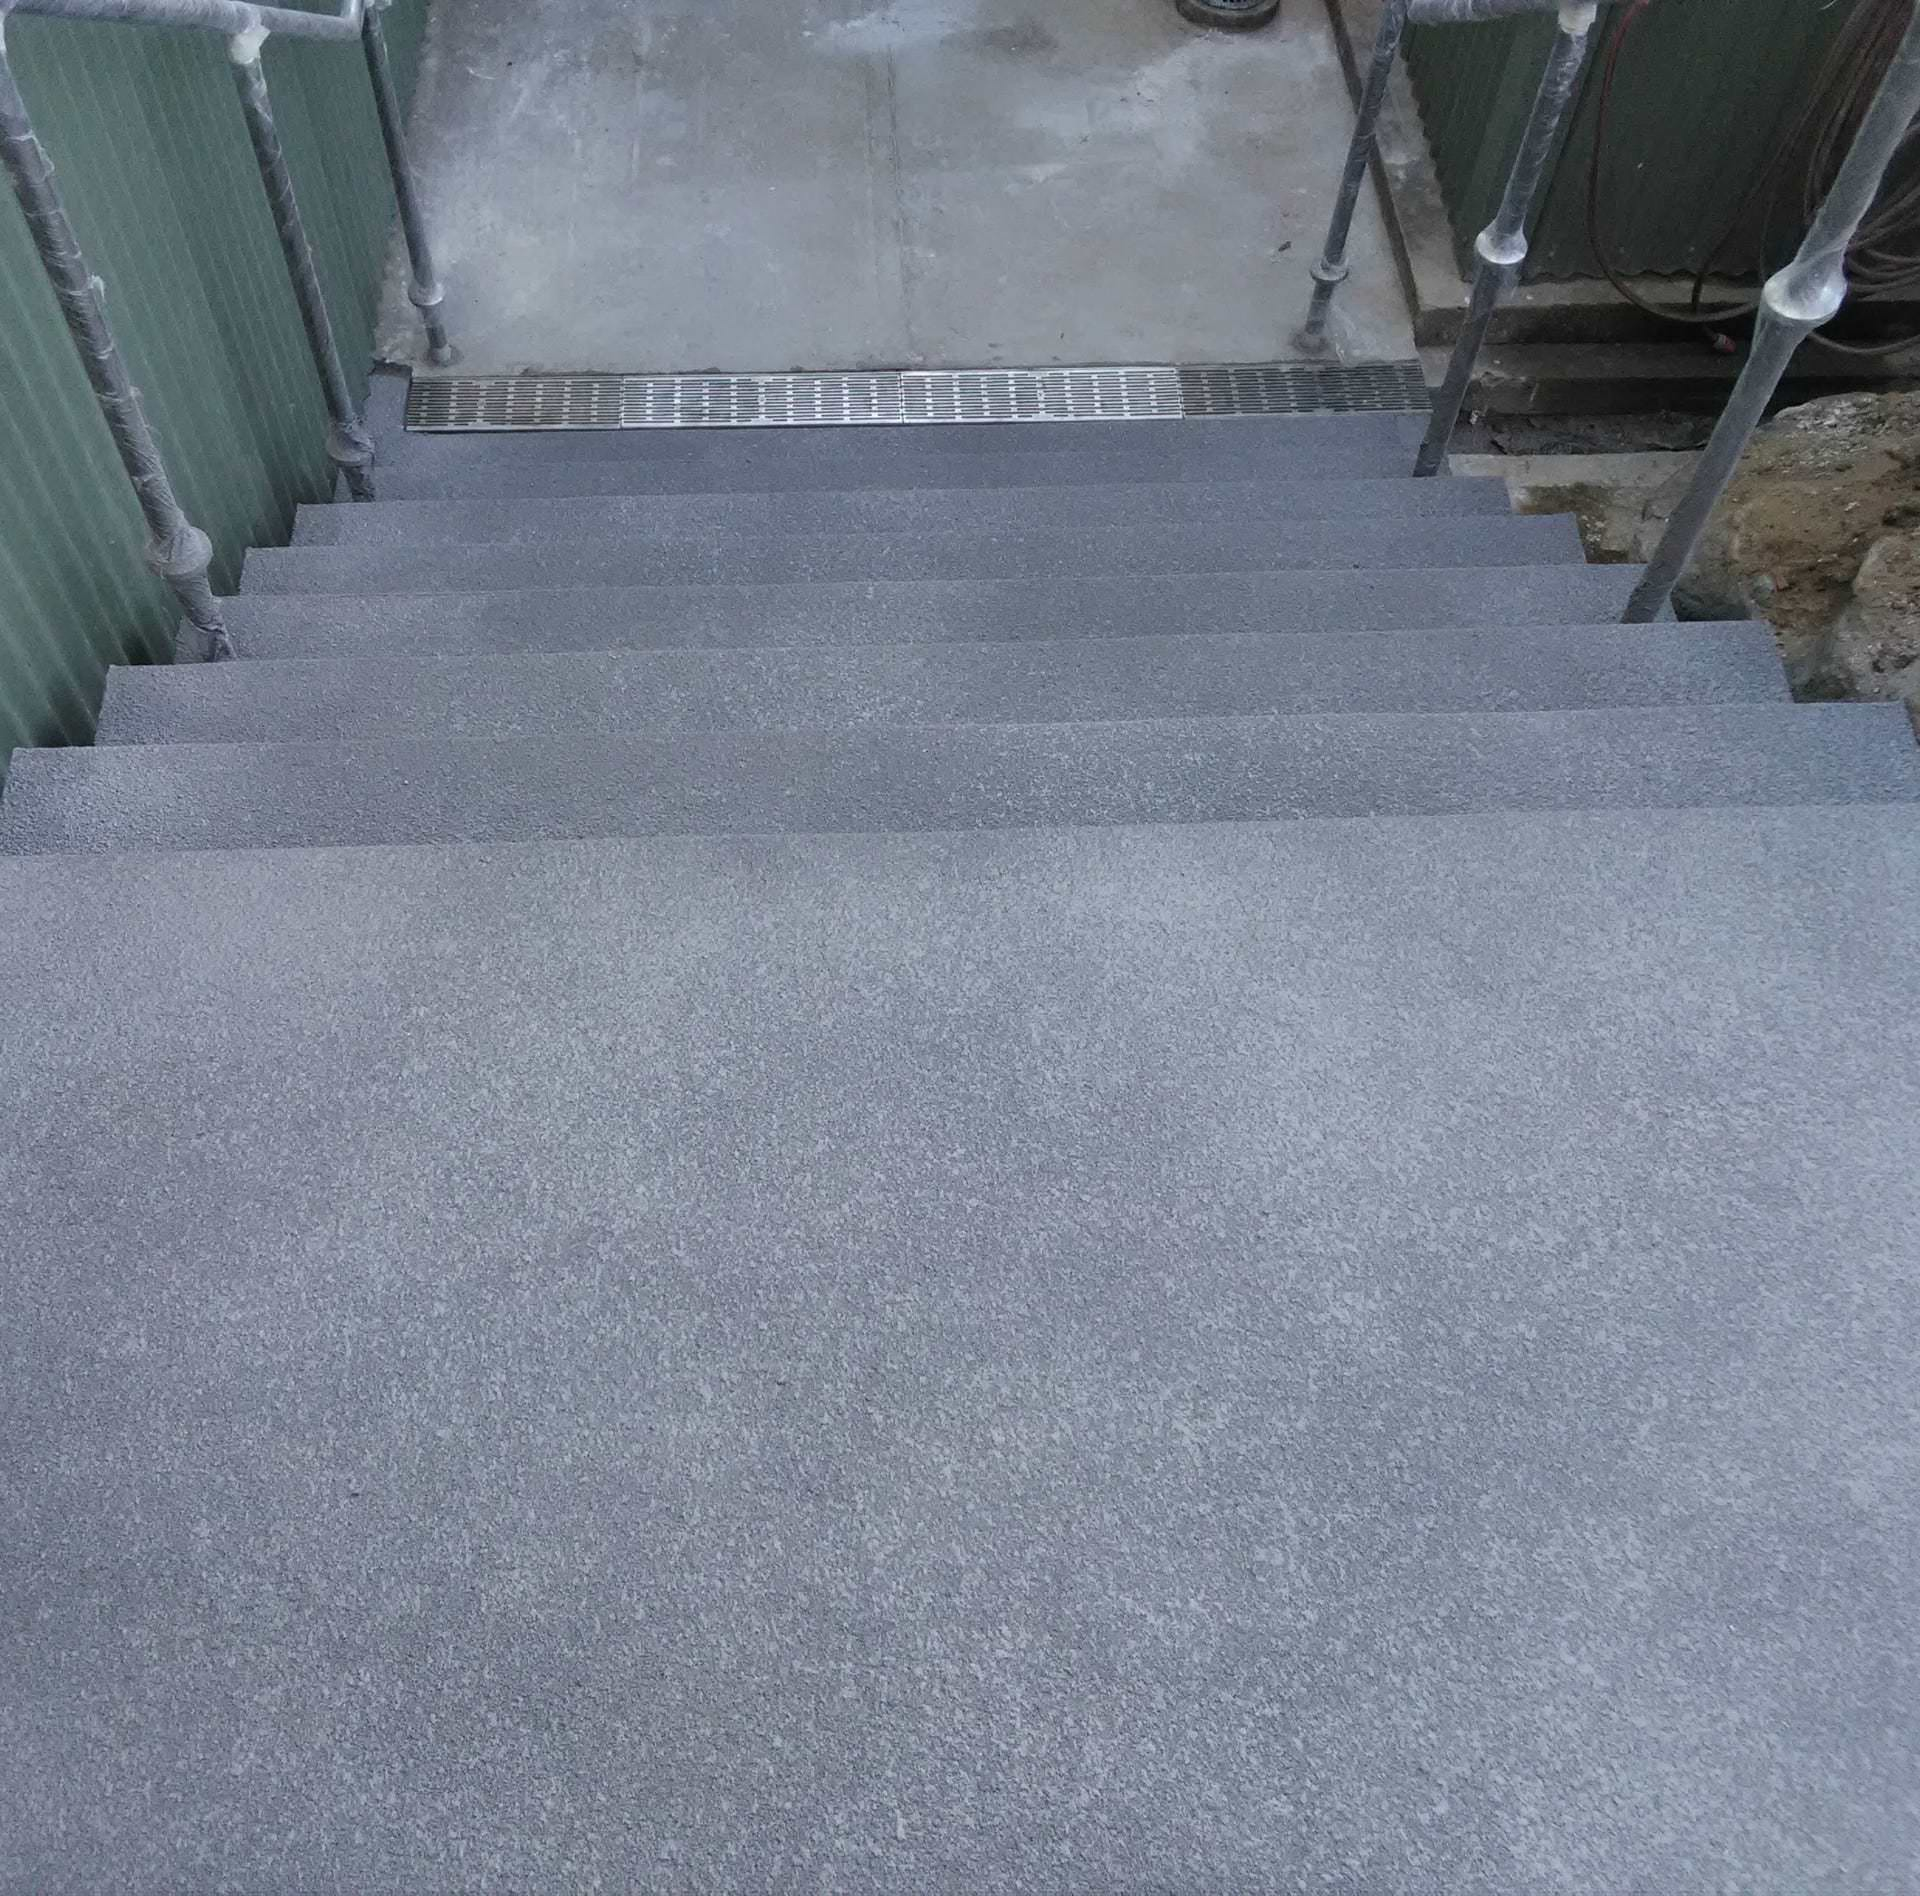 MLC Fabrication  Stairs / Staircase, Bathhouse Construction Hunter Valley, Newcastle, Manly Vale NSW